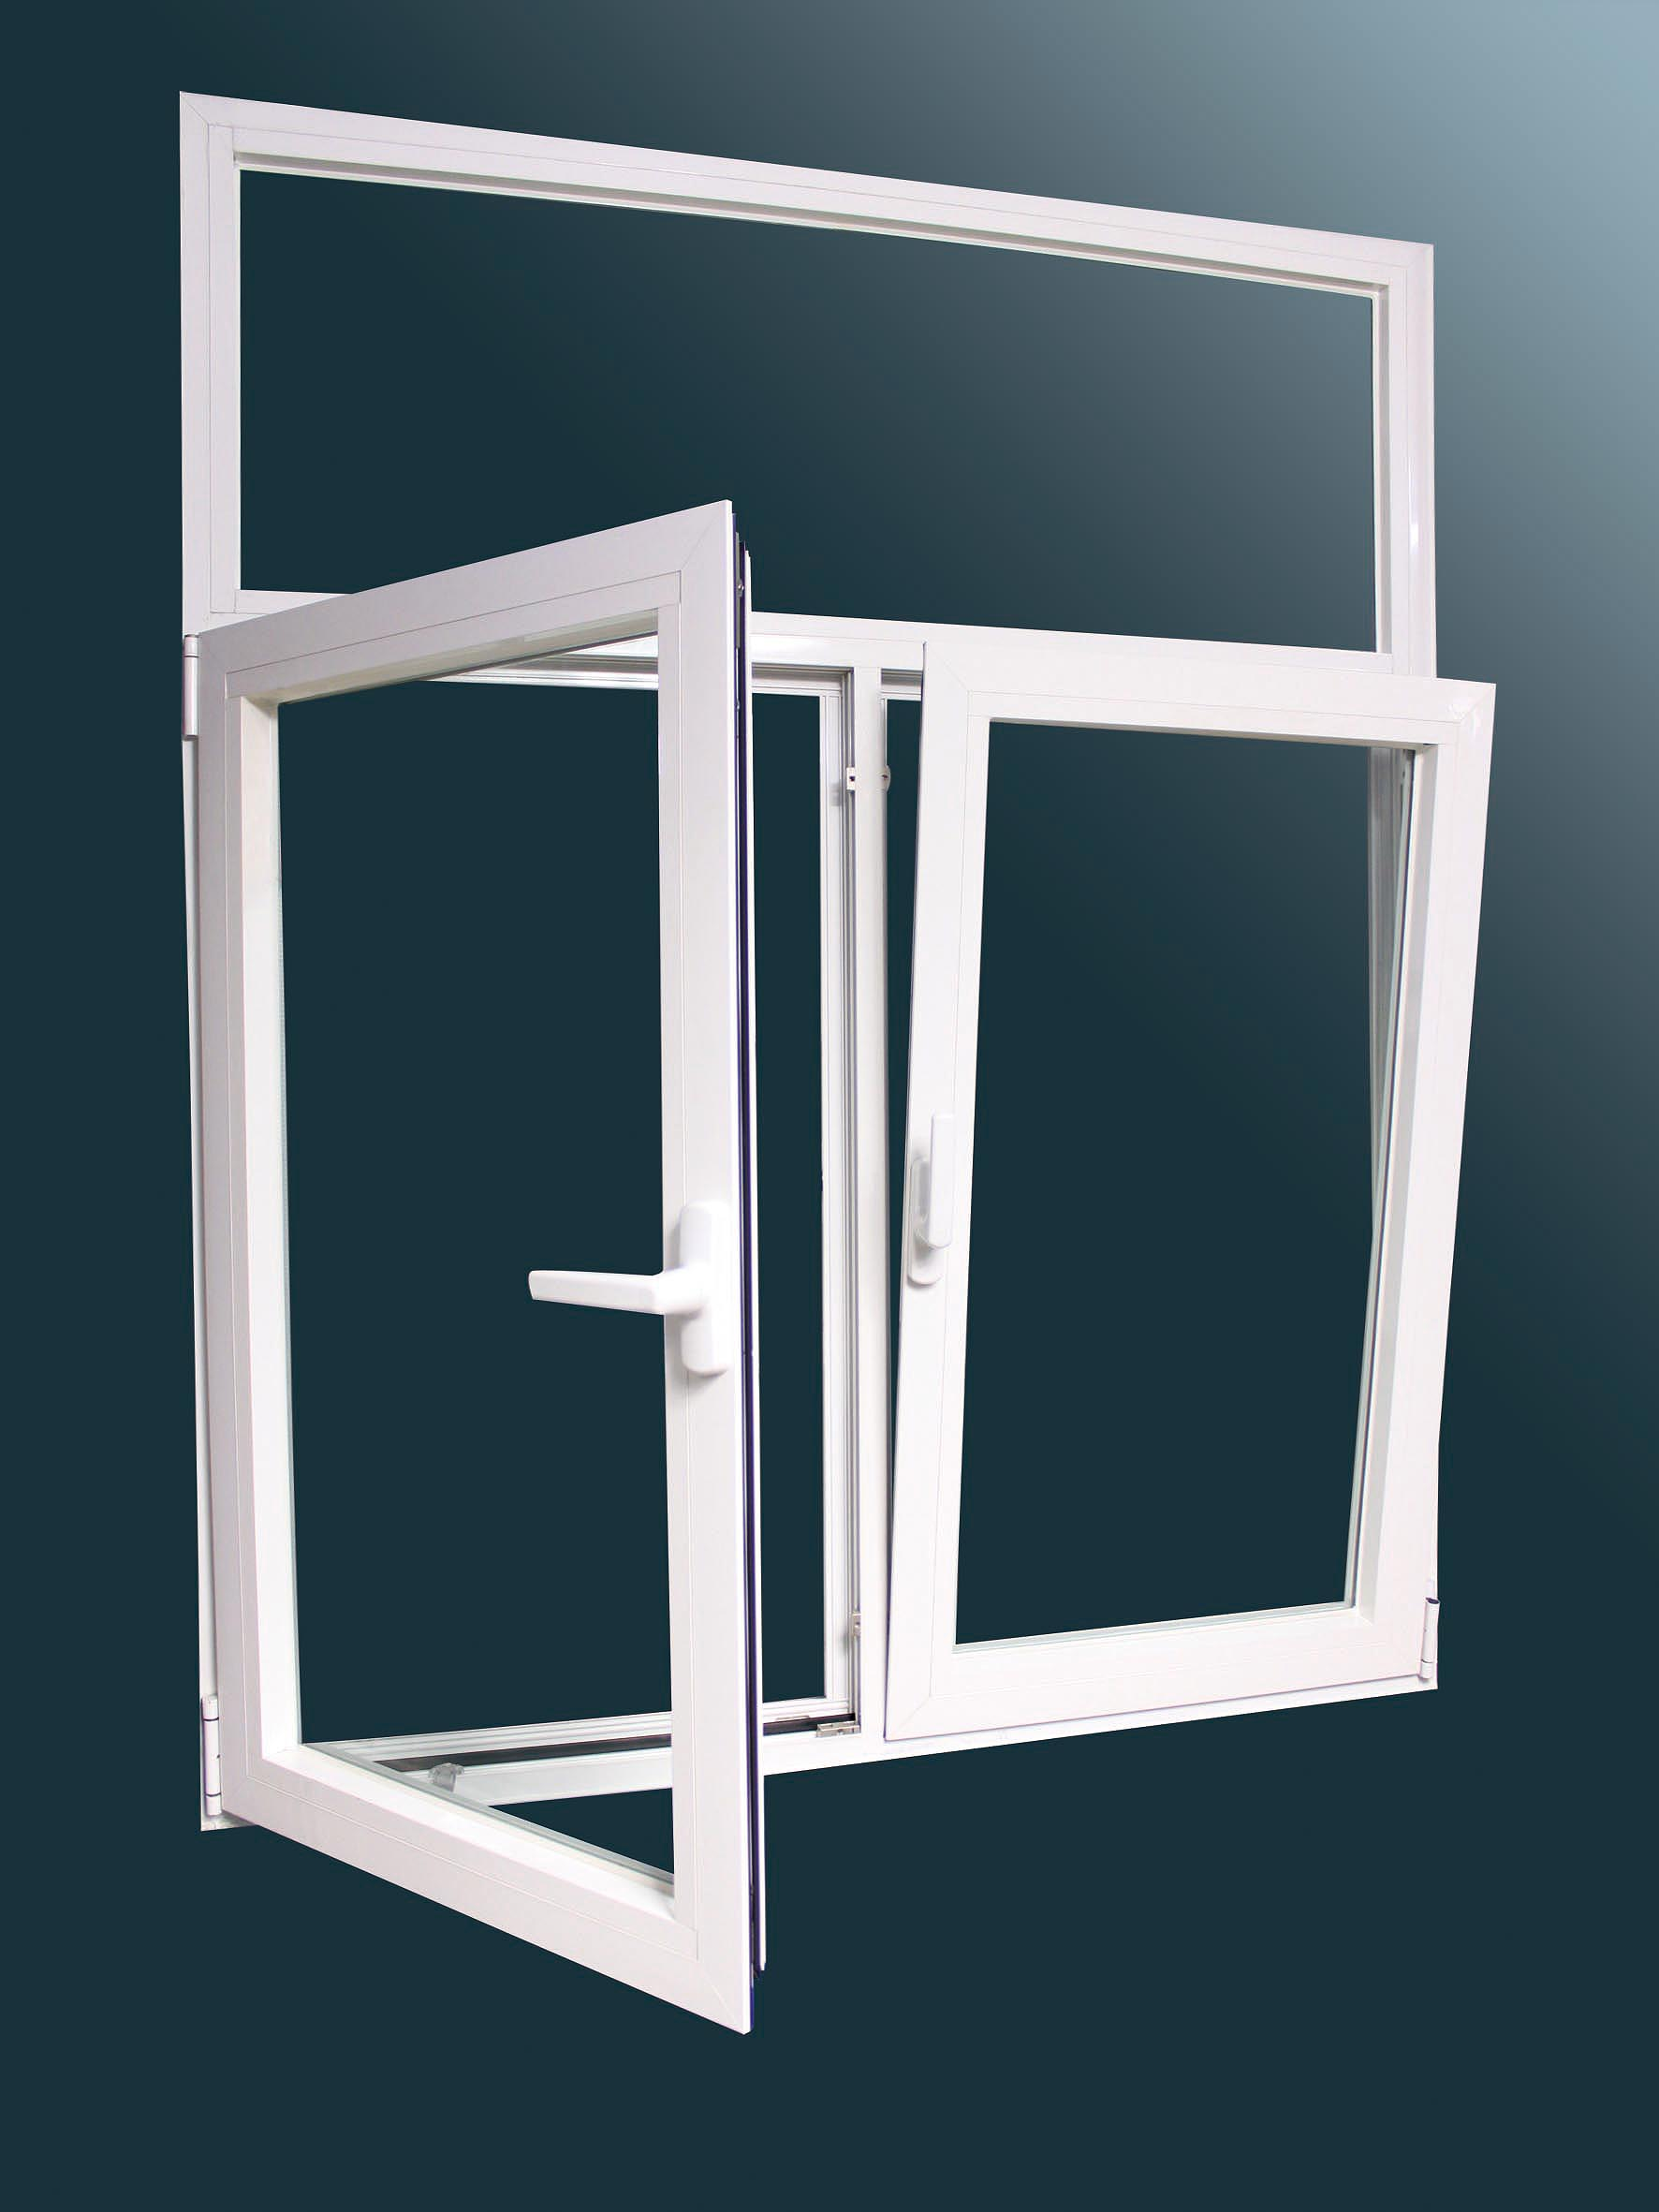 Aluminum Windows Product : Aluminum frame u value